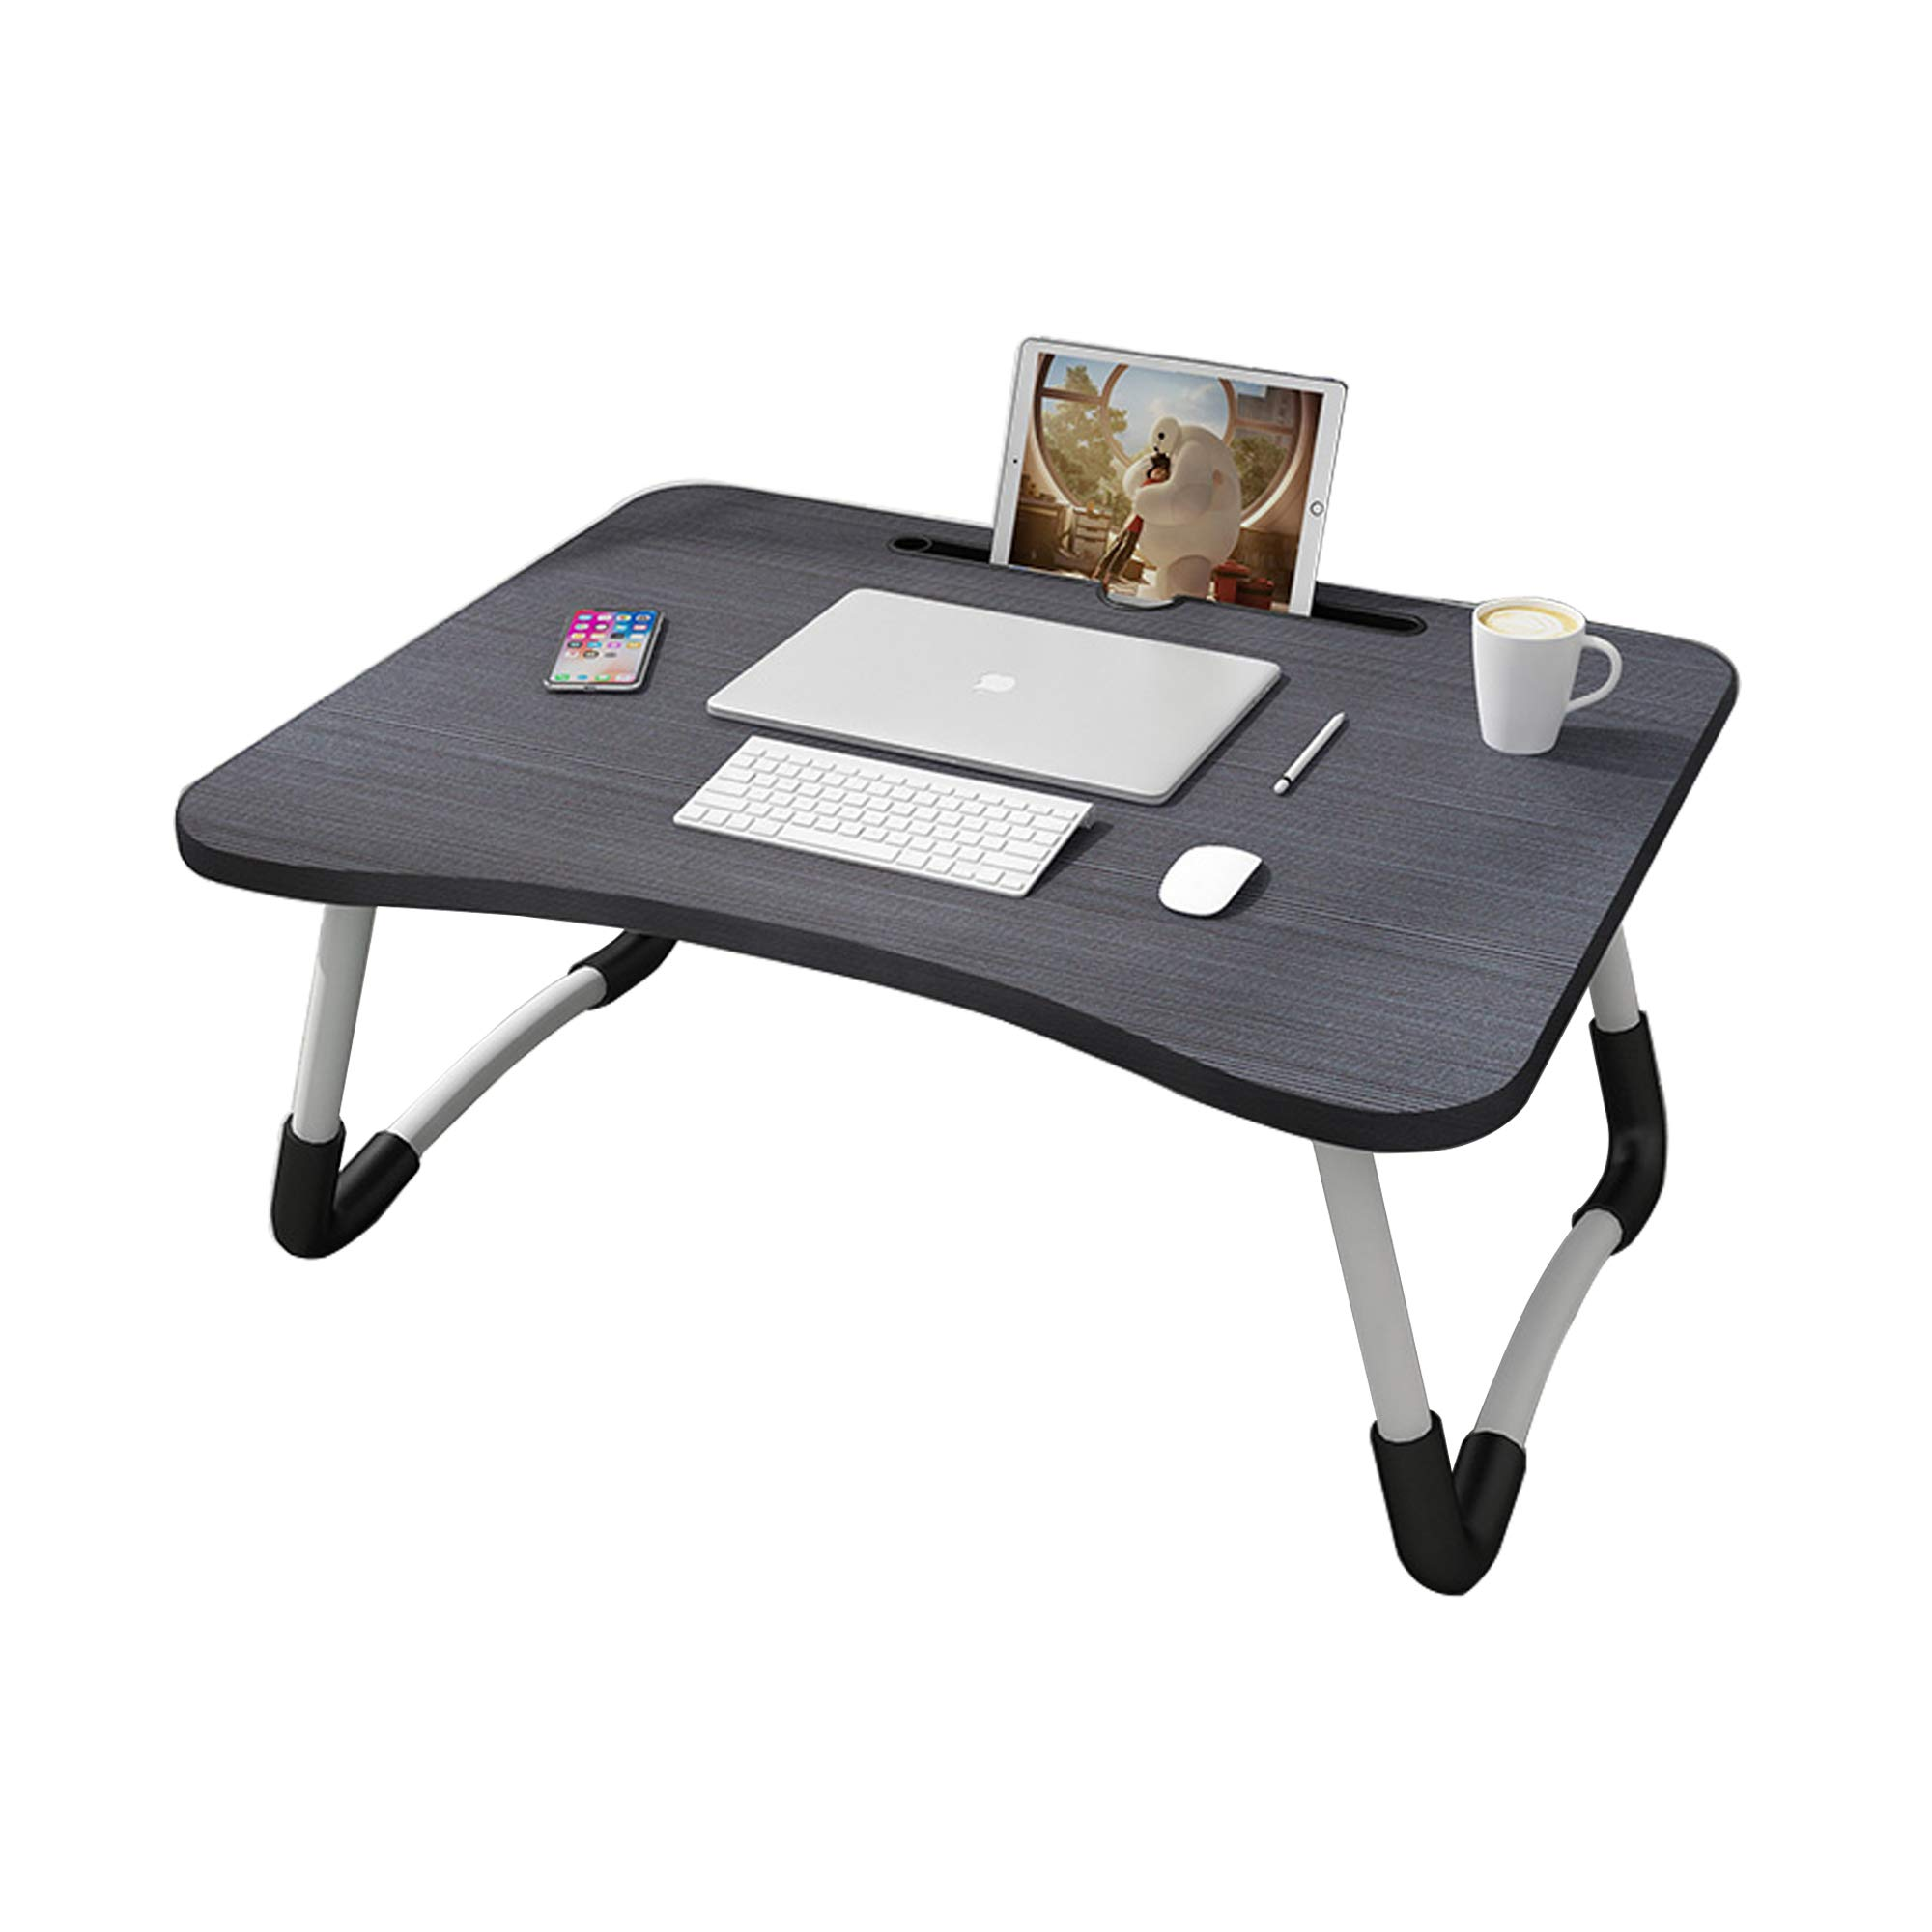 MemeHo® Smart Multi-Purpose Laptop Table with Dock Stand/Study Table/Bed Table/Foldable and Portable/Ergonomic & Rounded Edges/Non-Slip Legs (Black) product image